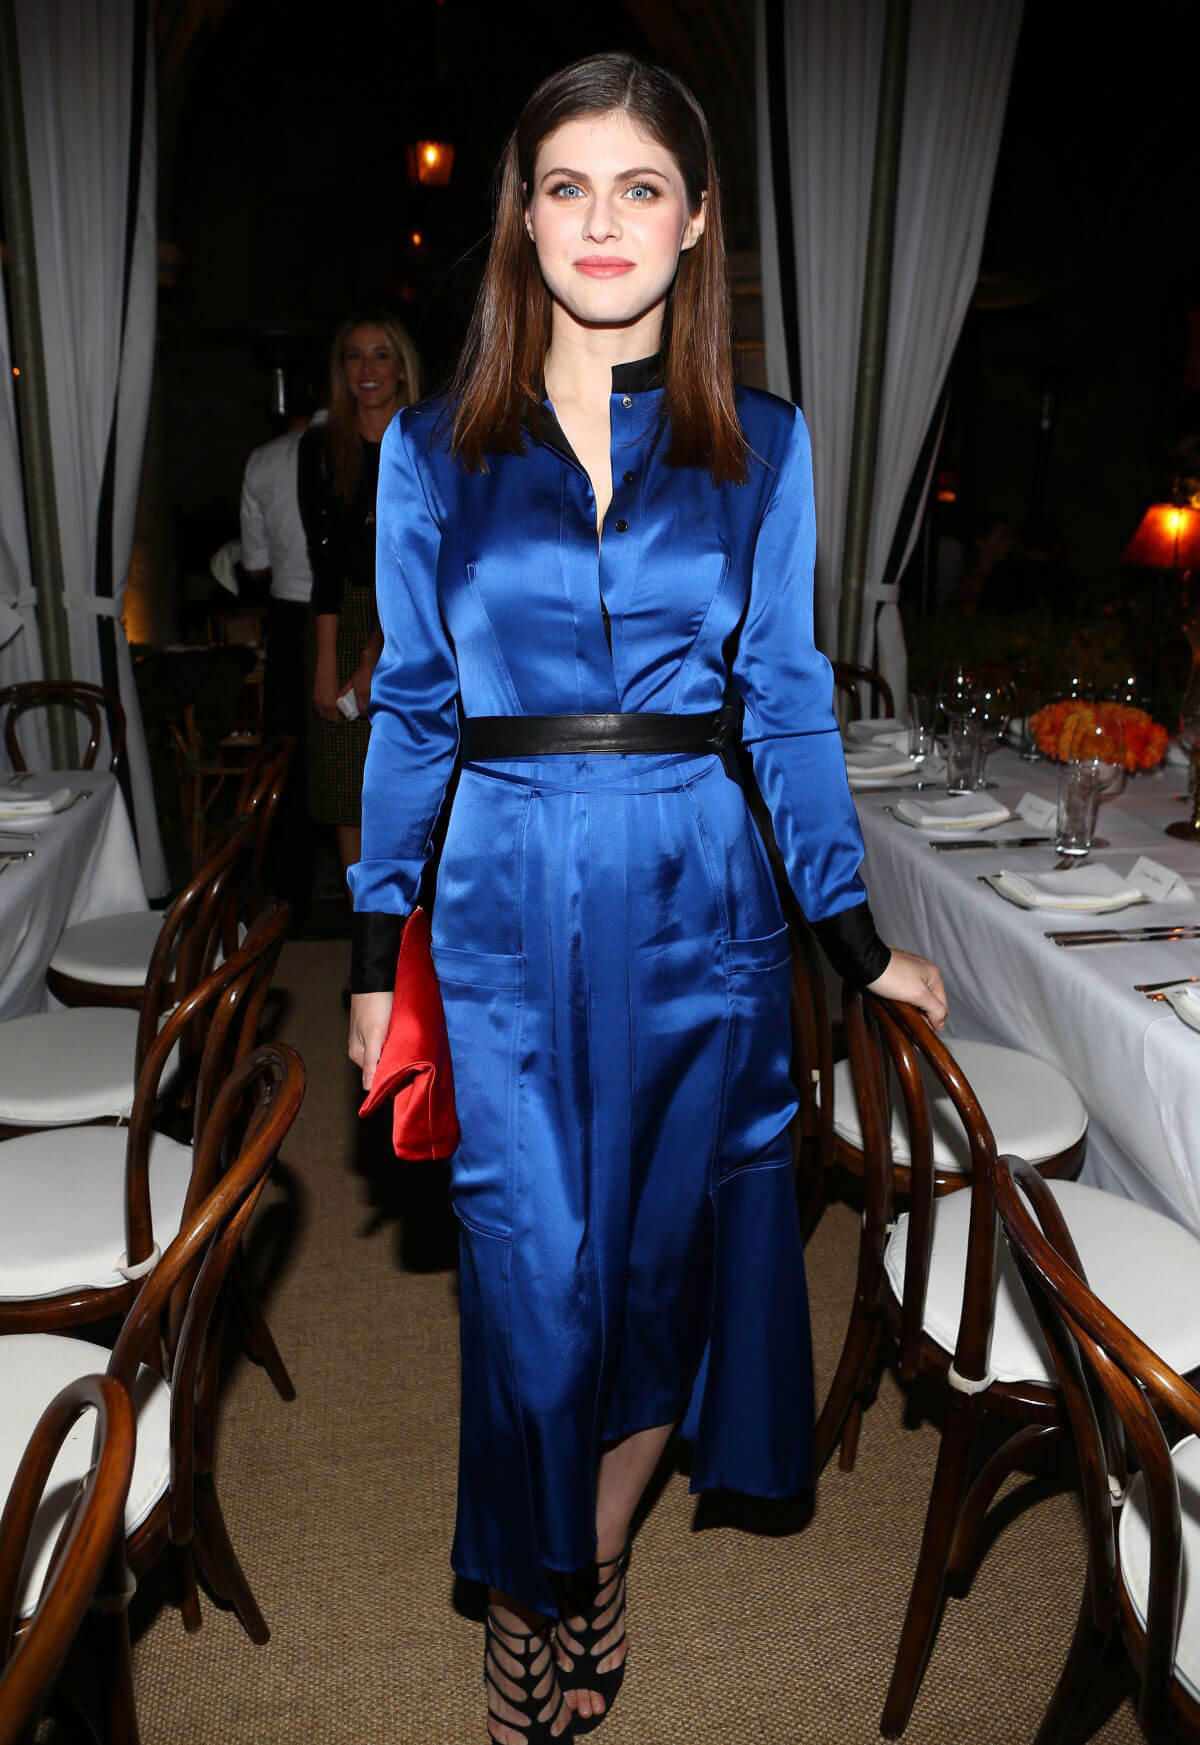 Alexandra Daddario at DVF Dinner in Los Angeles